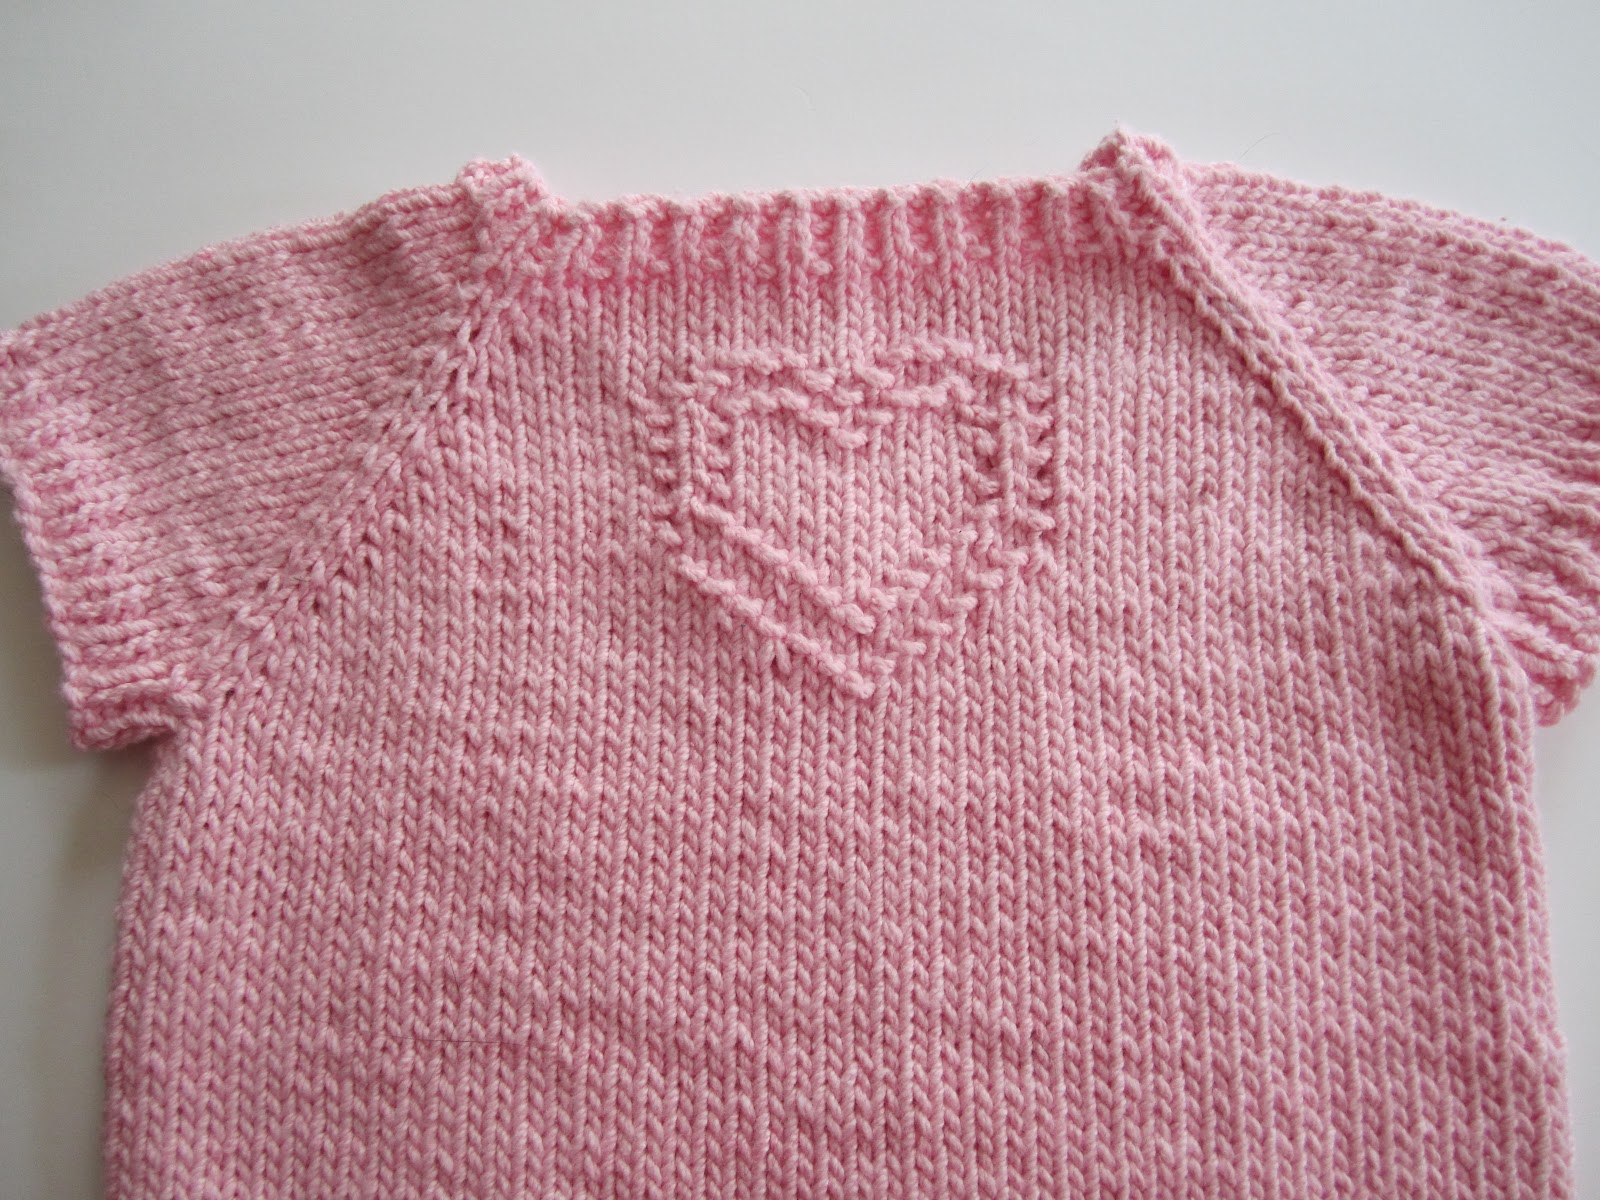 Joining Stitches When Knitting In The Round : Down Cloverlaine: Sweet Tee